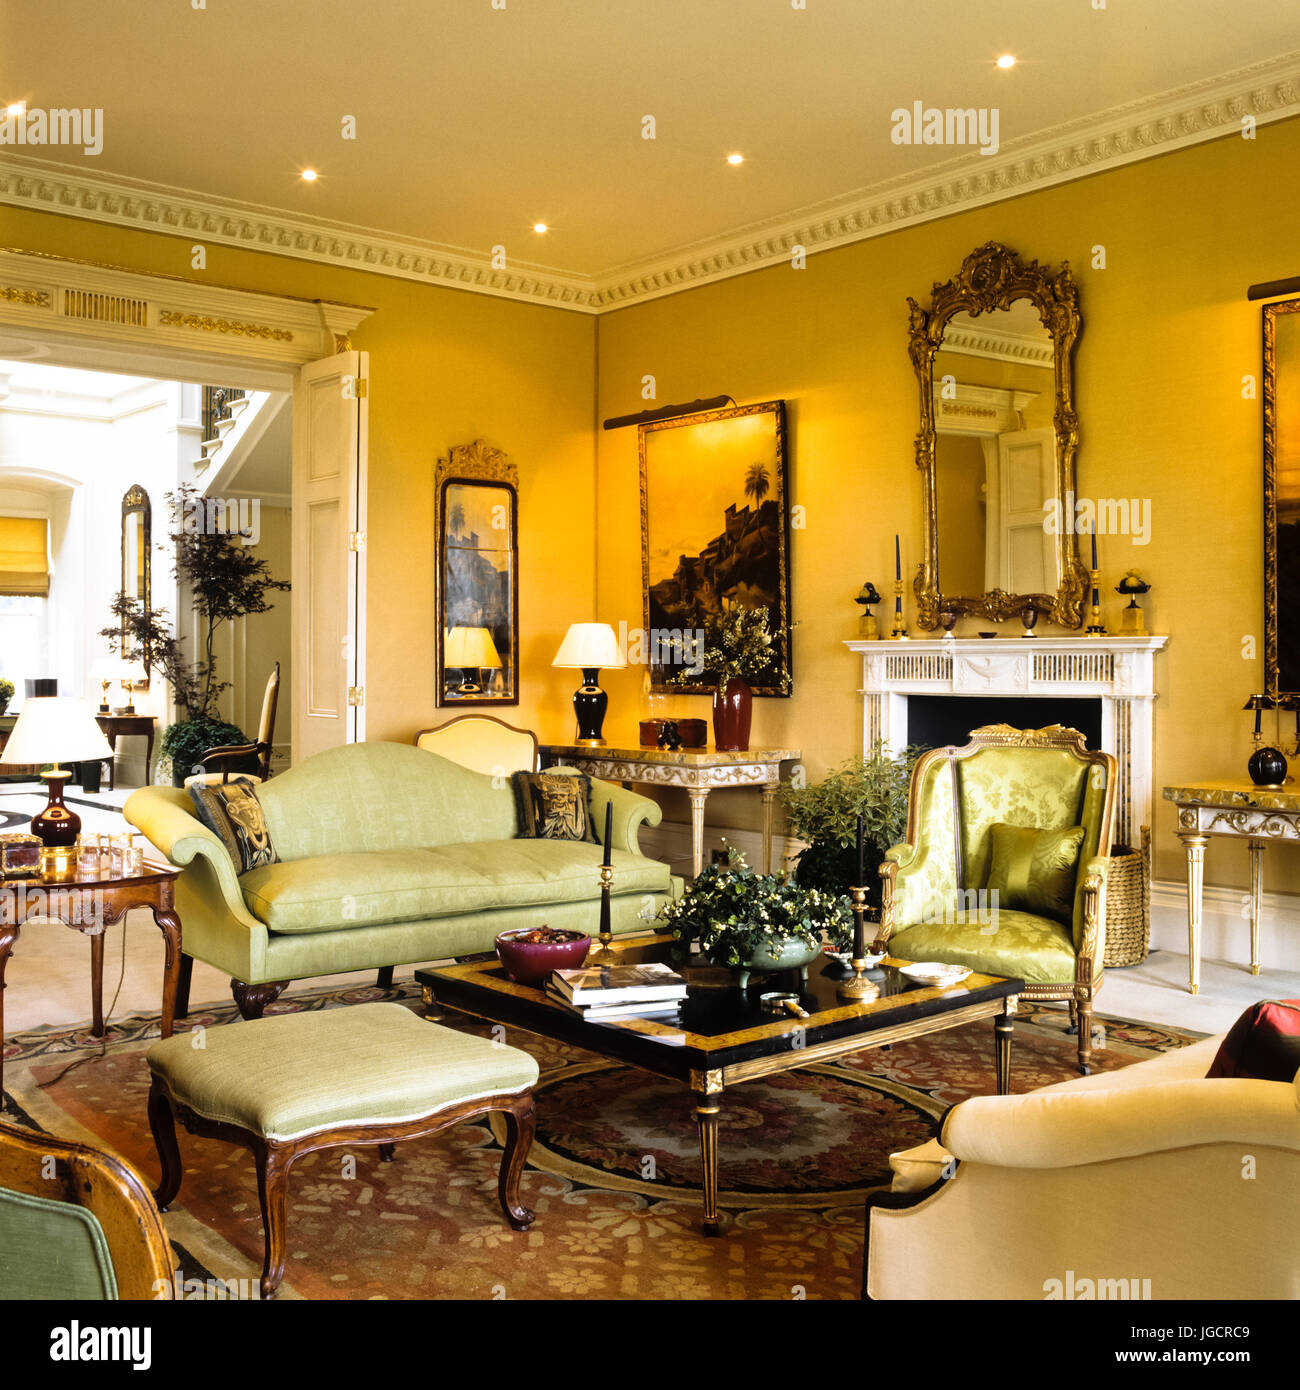 Edwardian living room with green seating - Stock Image